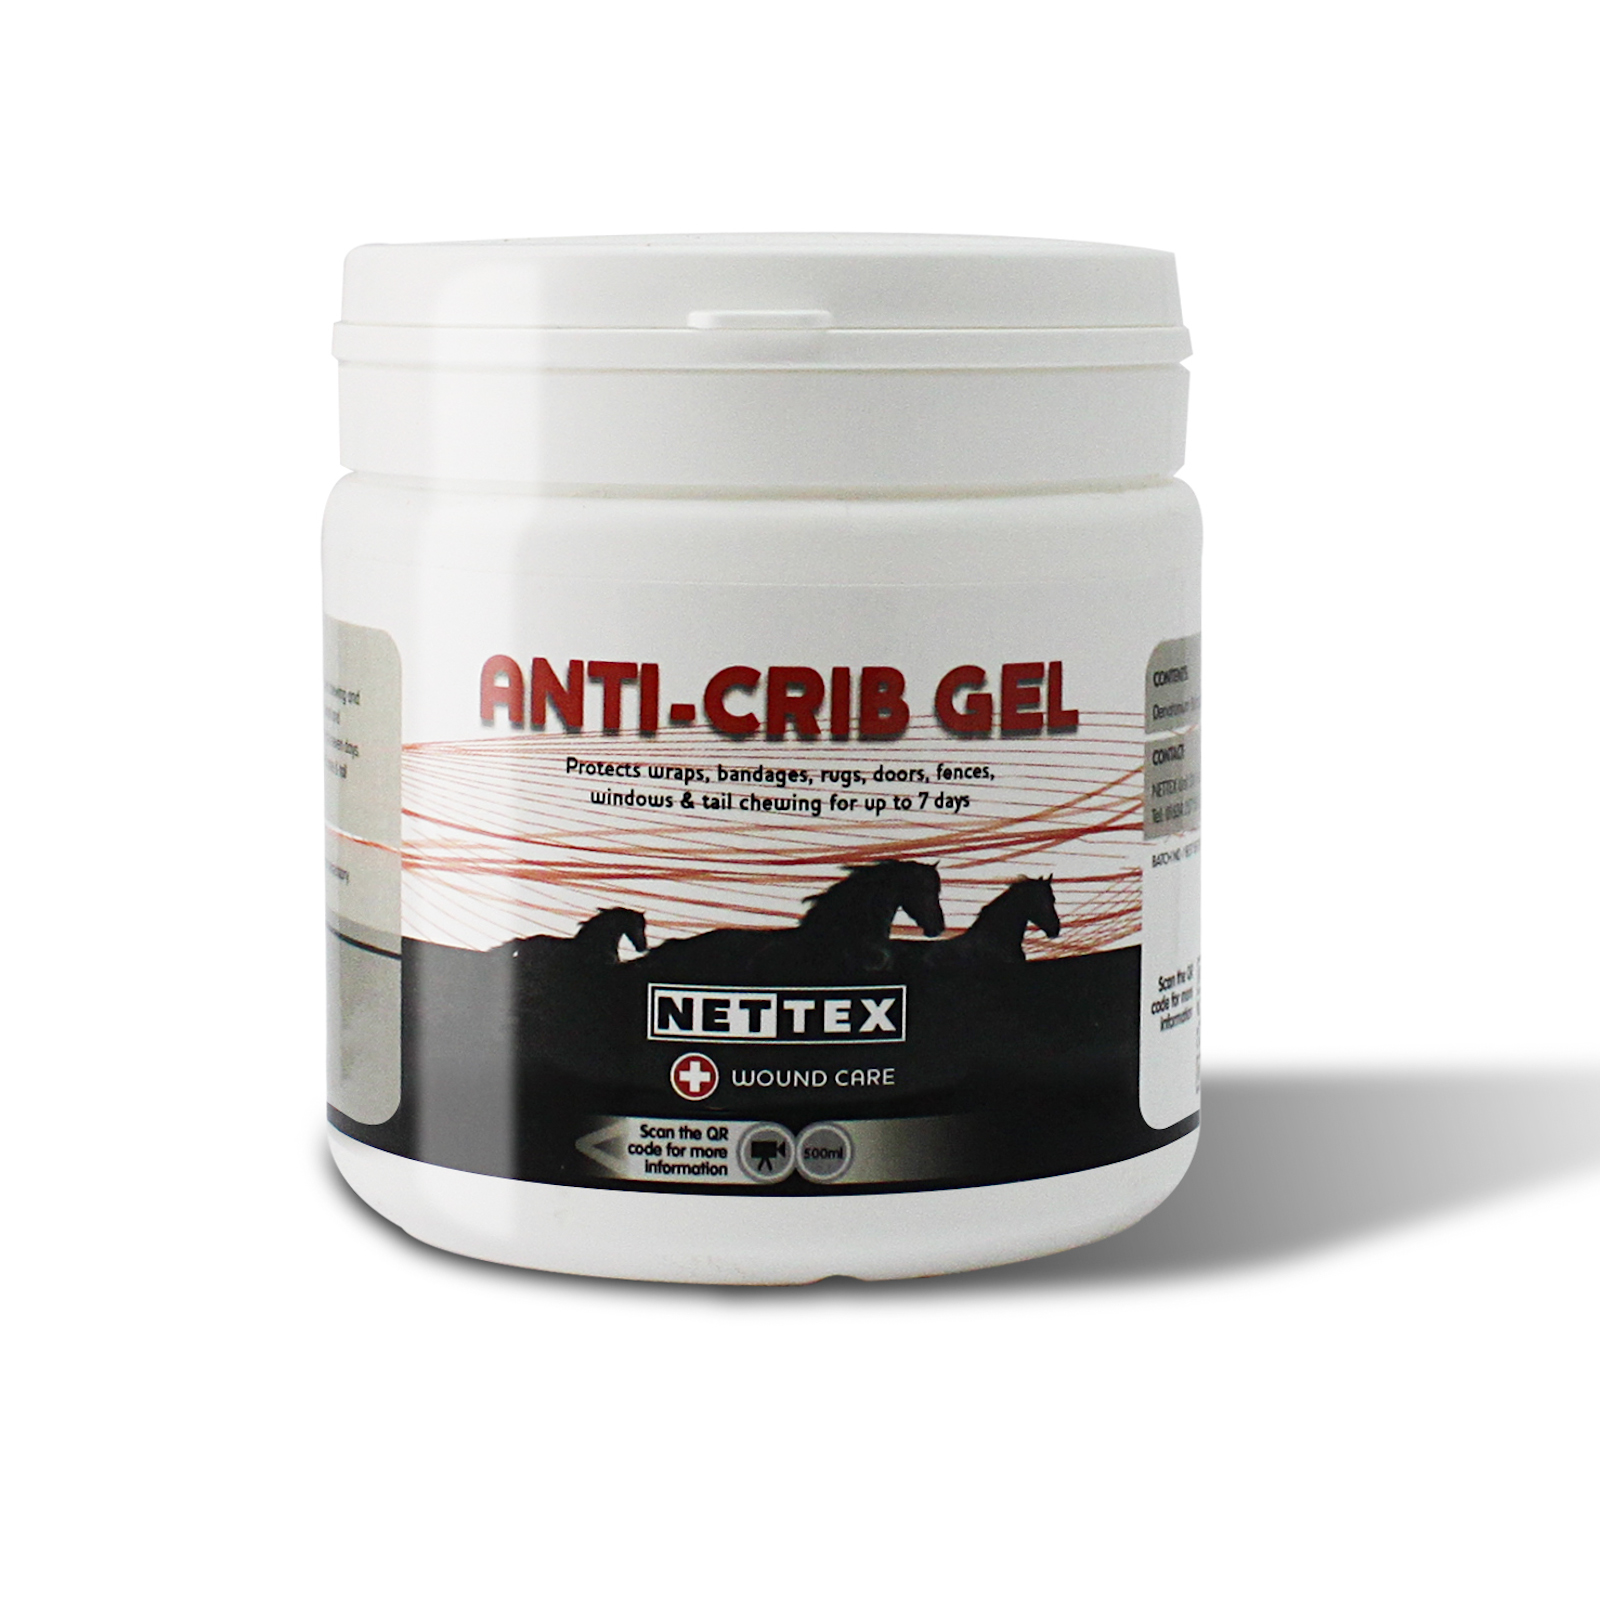 Nettex Anti-Crib Gel